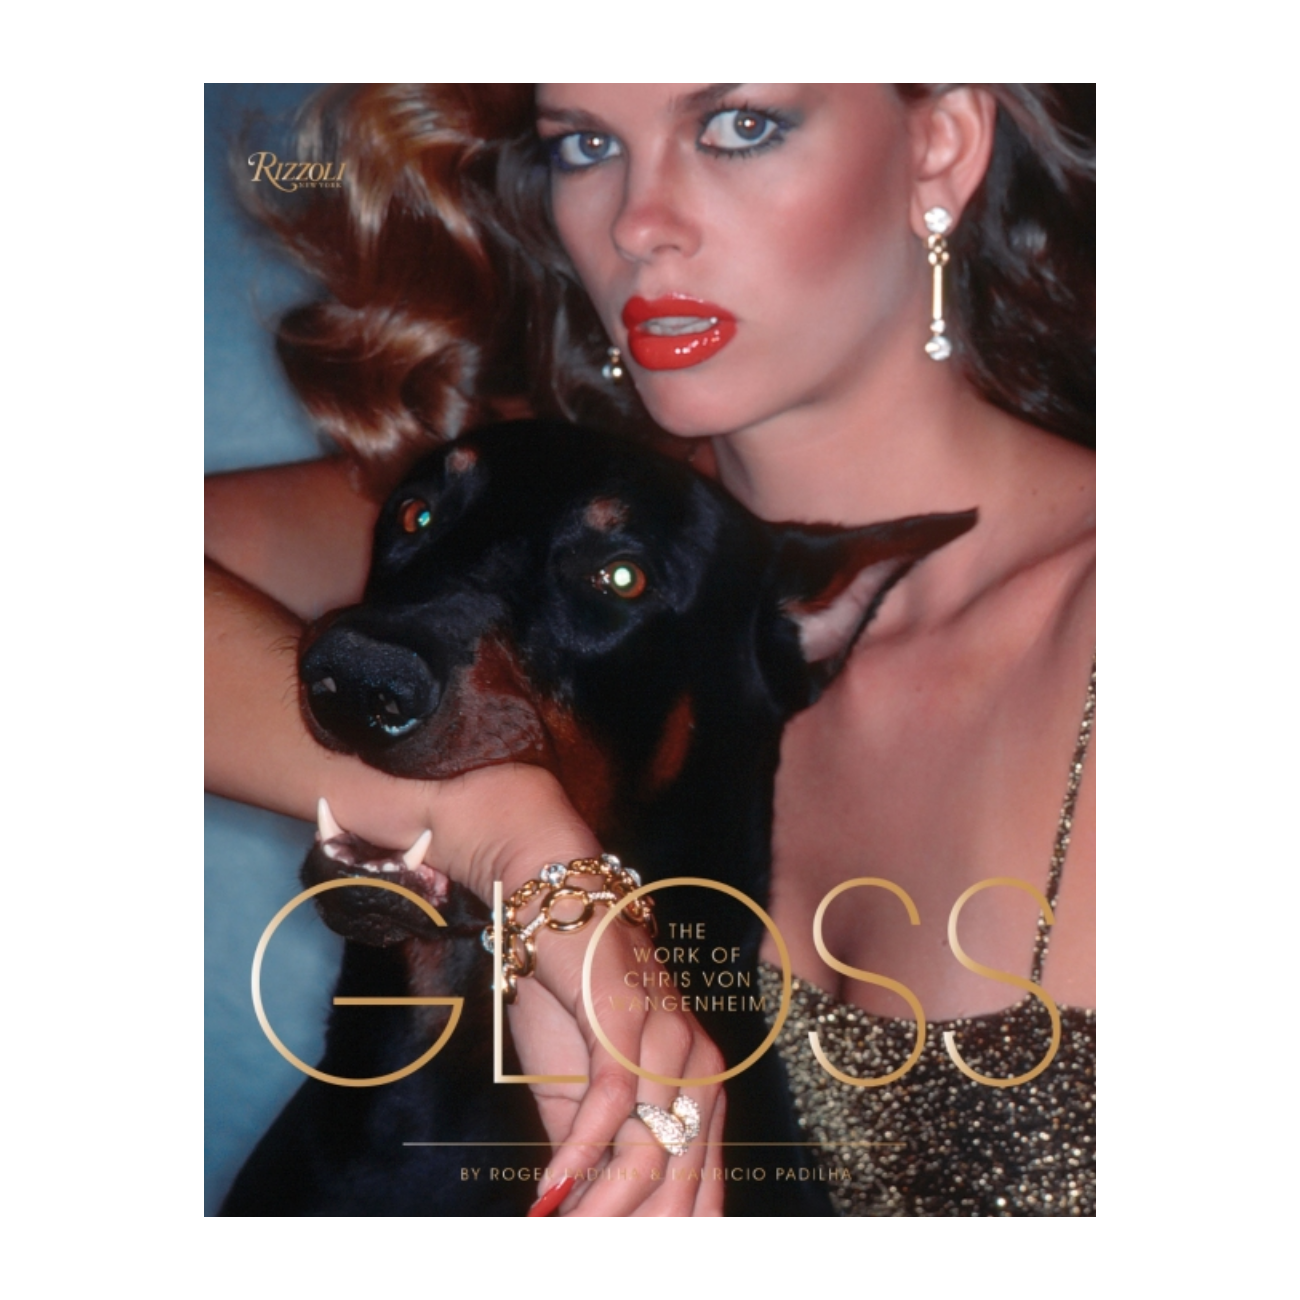 Gloss. The work of Chris Von Wangenheim